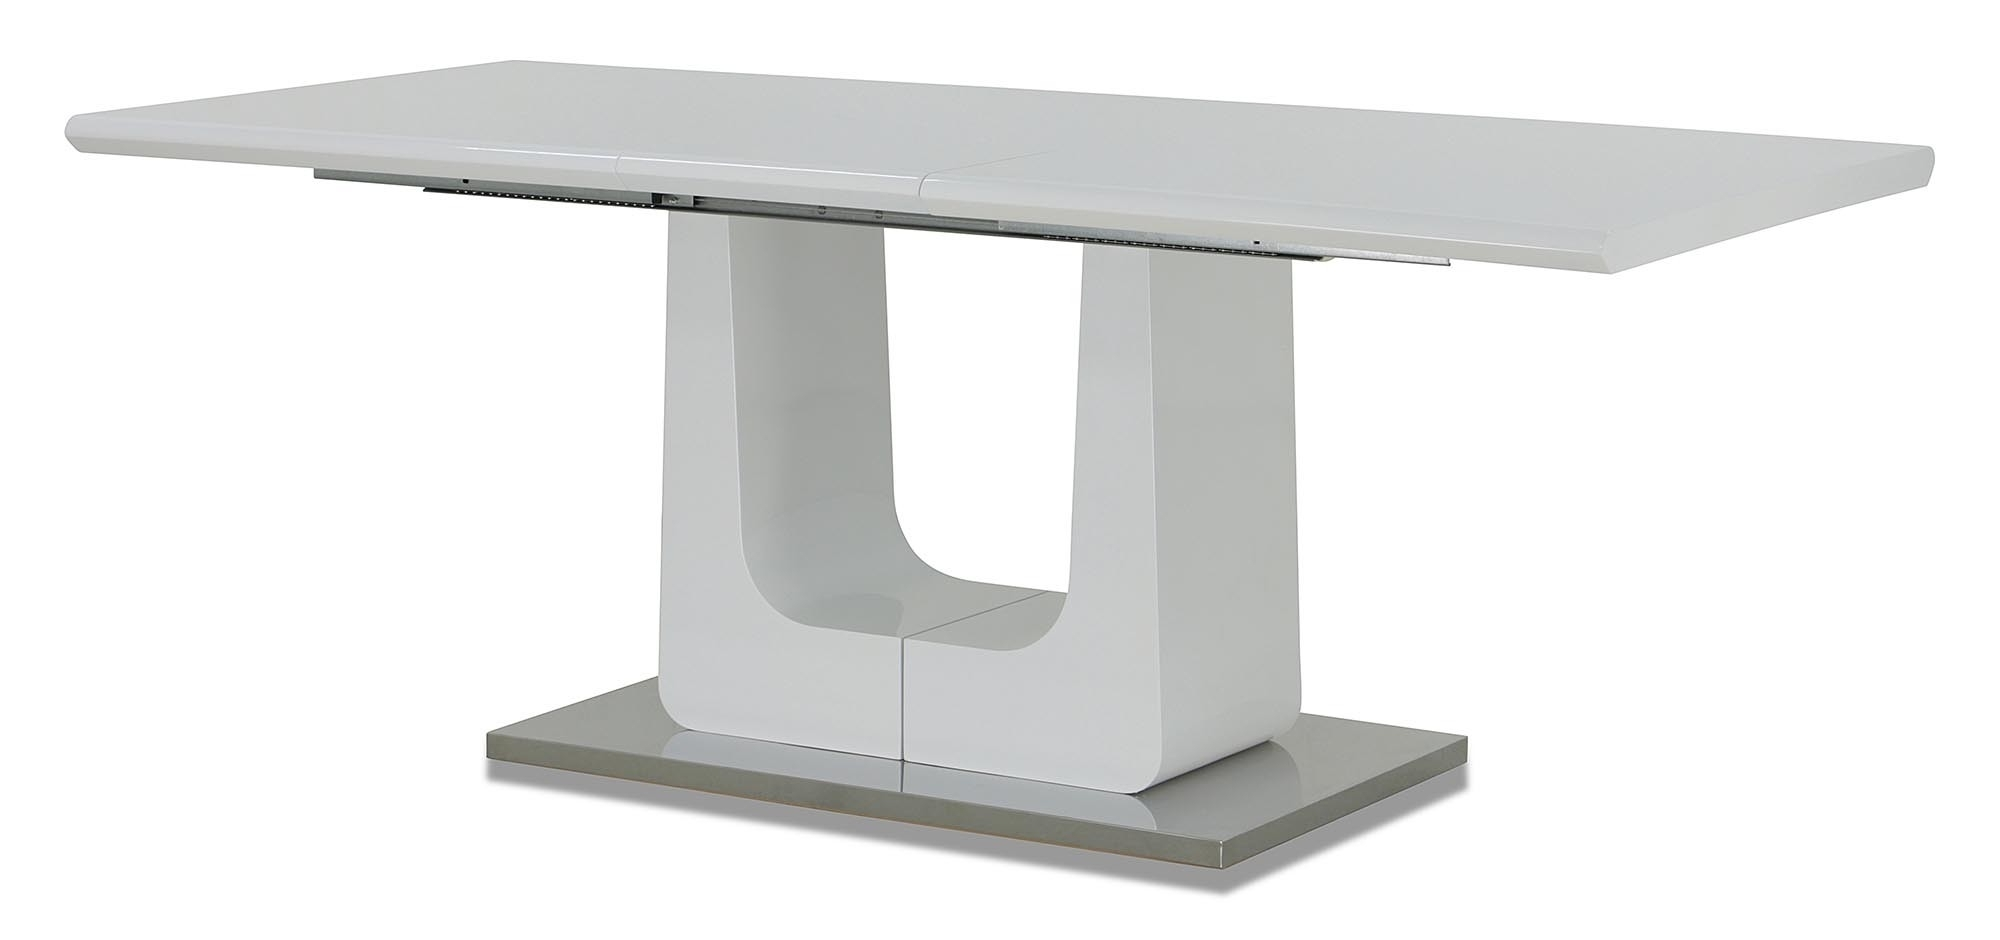 Fortytwo Intended For Cheap Extendable Dining Tables (View 21 of 25)